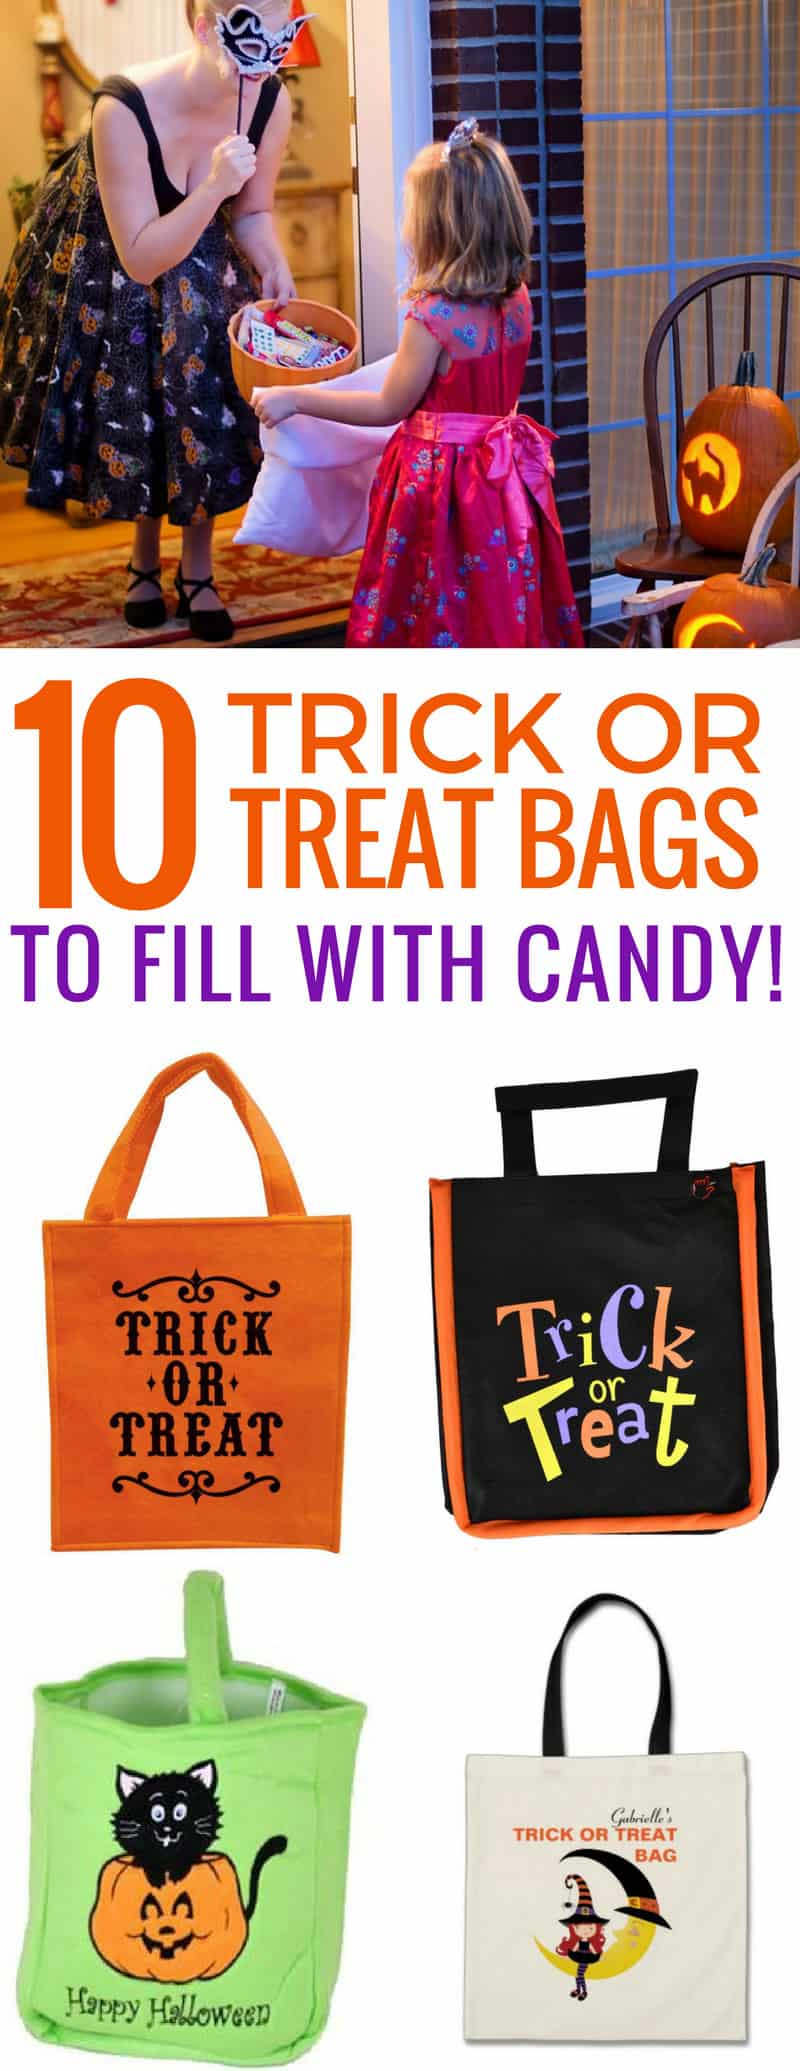 Loving these reusable trick or treat bags - they scream Halloween and are easier to carry than an old pillowcase!